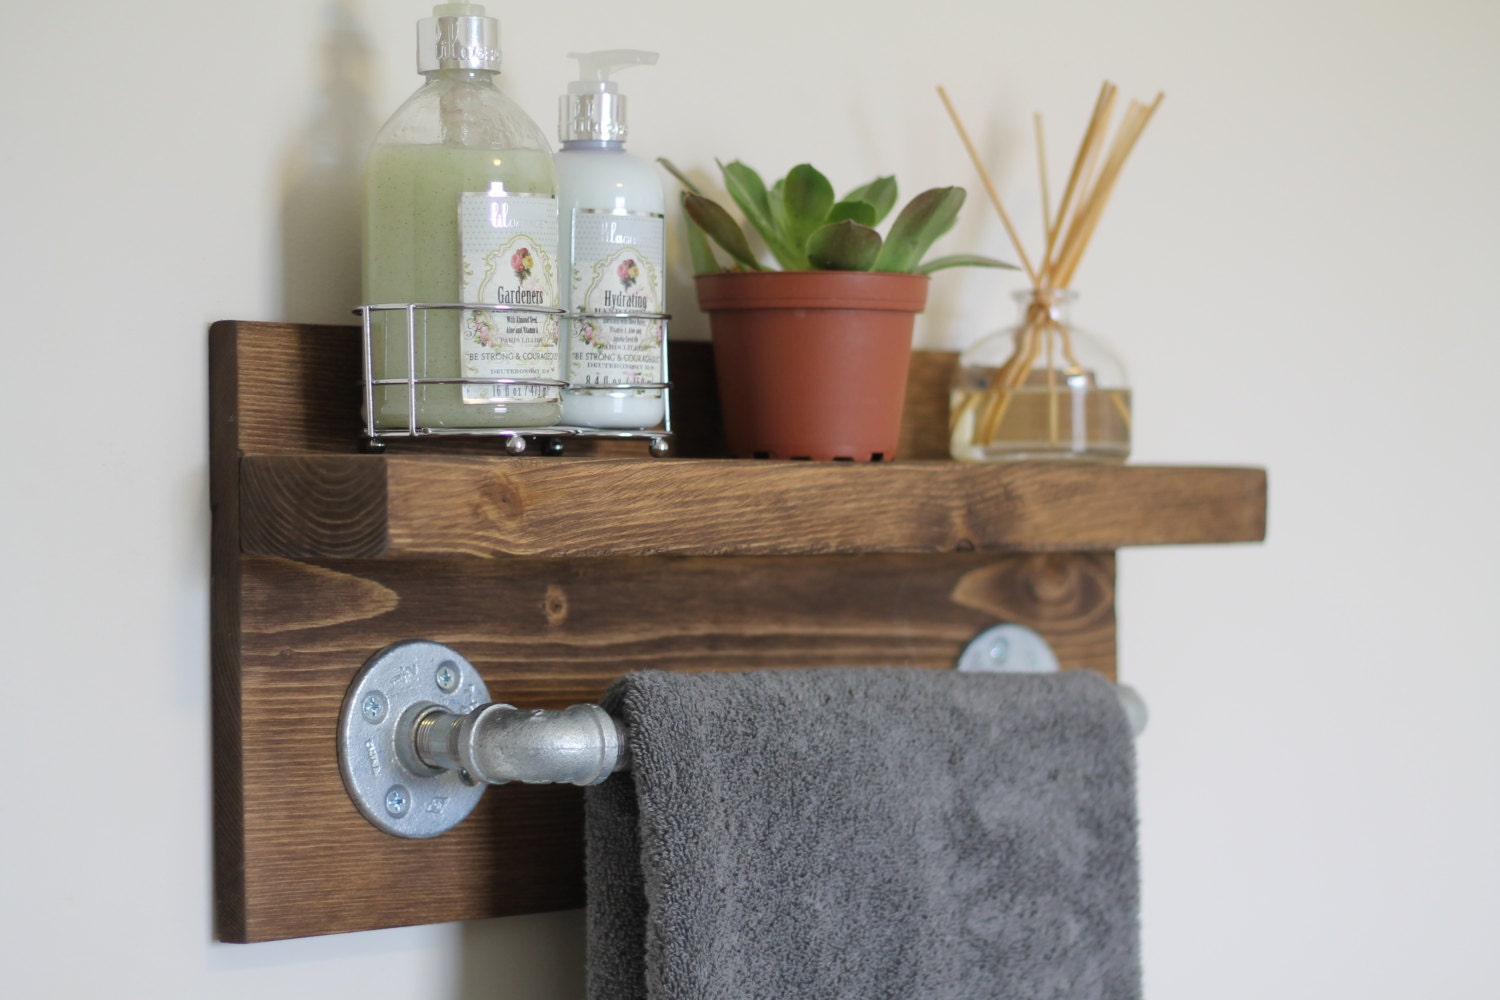 Rustic bathroom storage - Small Rustic Industrial Towel Rack Bathroom Shelf Rustic Home Decor Industrial Shelf